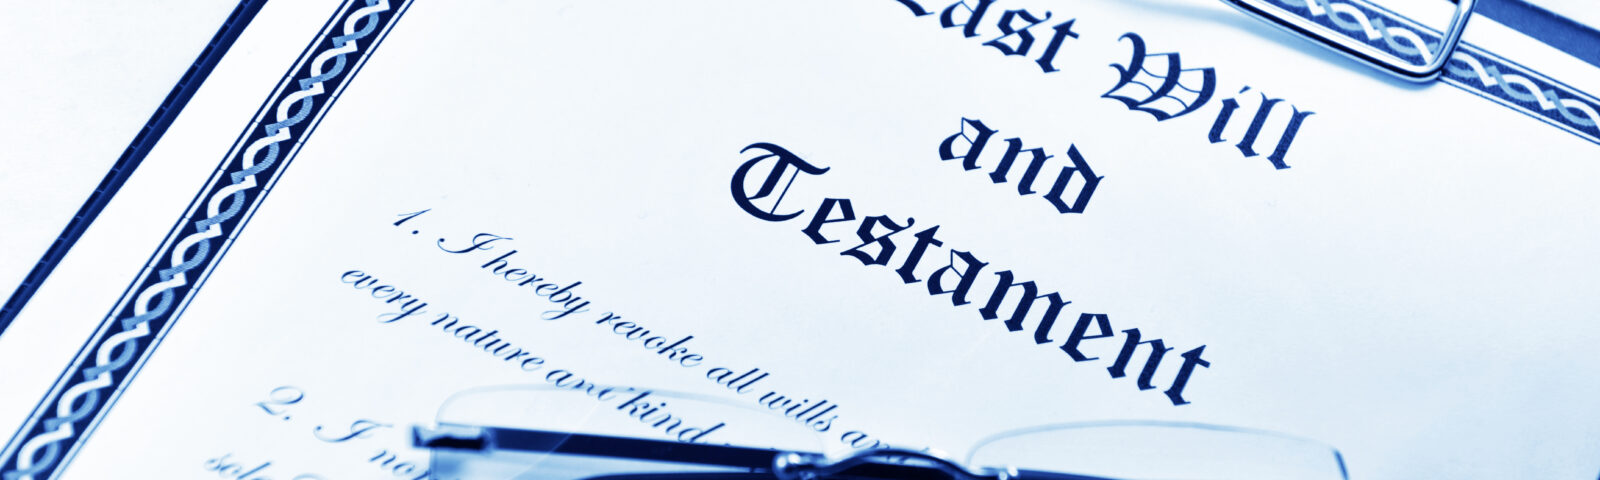 The importance of drafting a will by an attorney